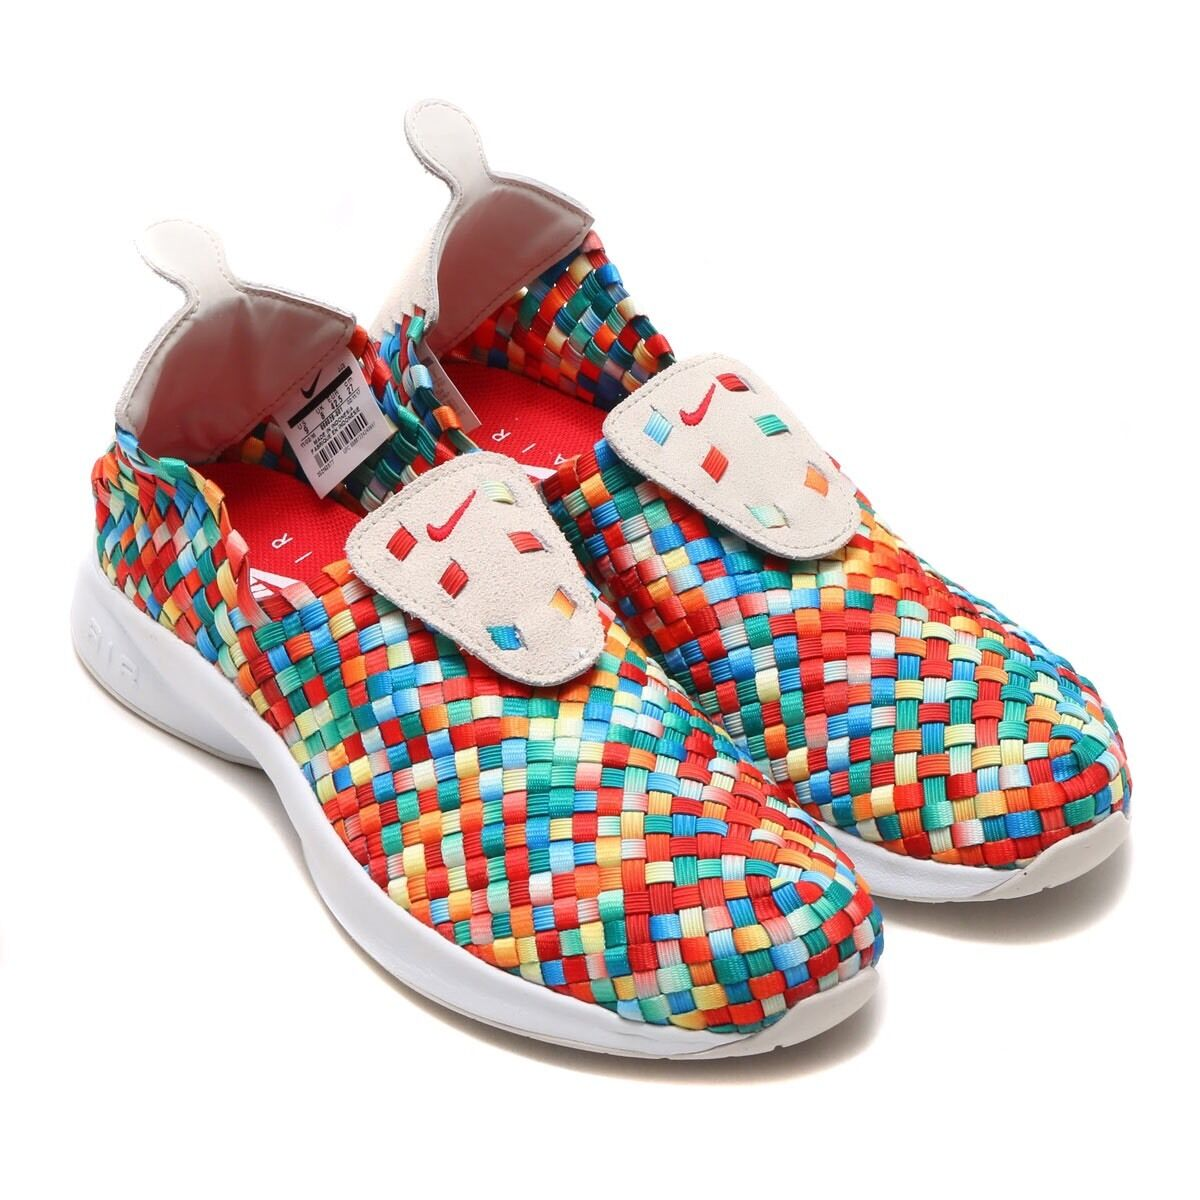 Nike Air Woven PRM Rainbow Light Bone/University Red 898028-001 Men's Comfortable Wild casual shoes